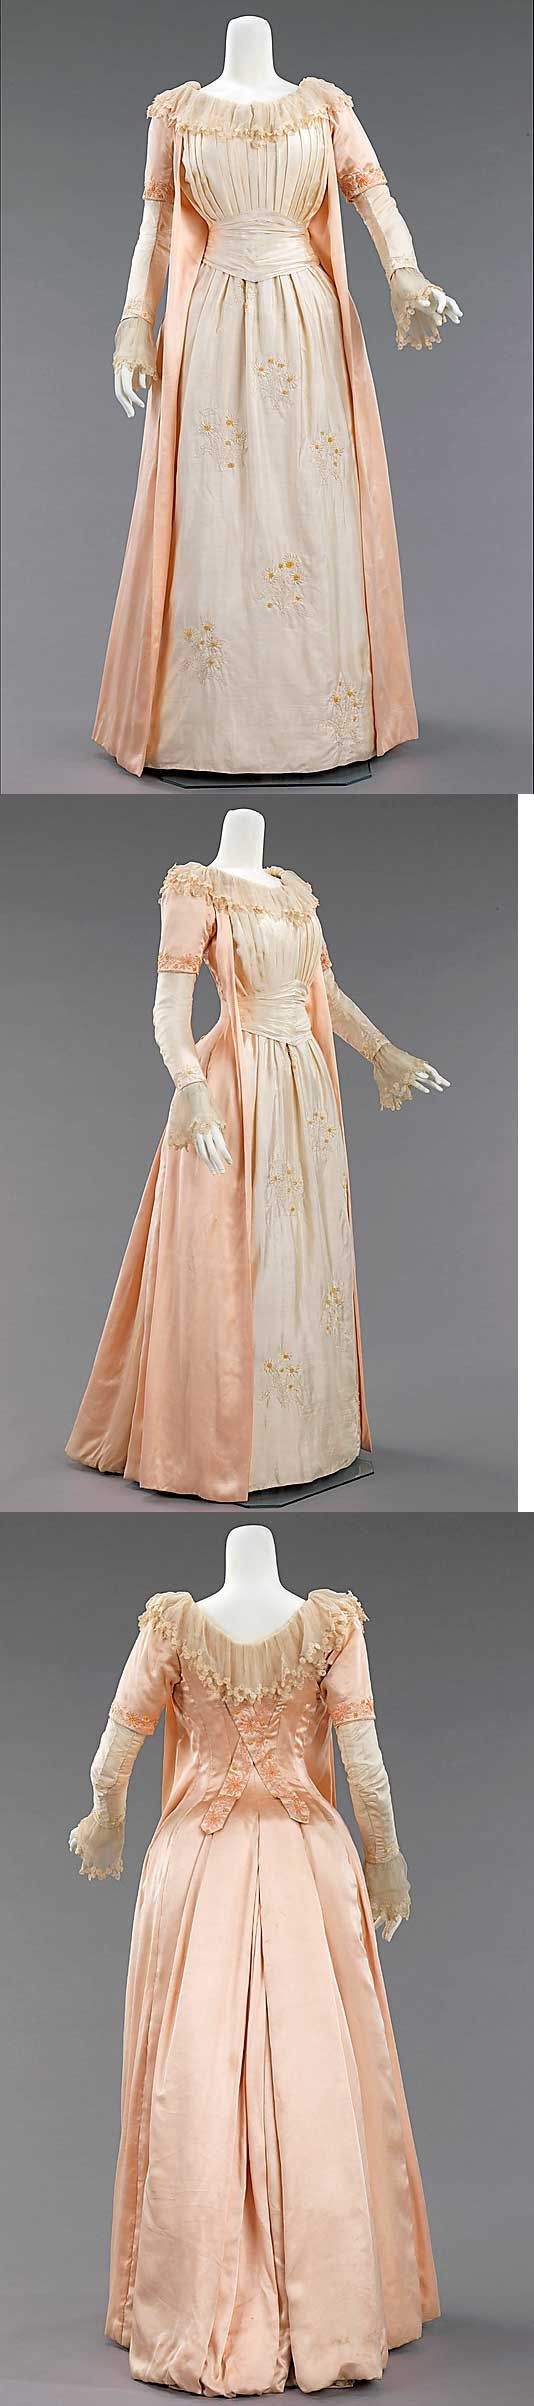 Tea Gown Liberty & Co., 1885. The Artistic dress had its roots in mid-Victorian England, where Pre-Raphaelite artists, with their love of things medieval, and disdain of industrialized society, revived a version of the loose fitting, relatively plain gowns of that time. Its successor, Aesthetic dress, drew from the same design, but not philosophical.